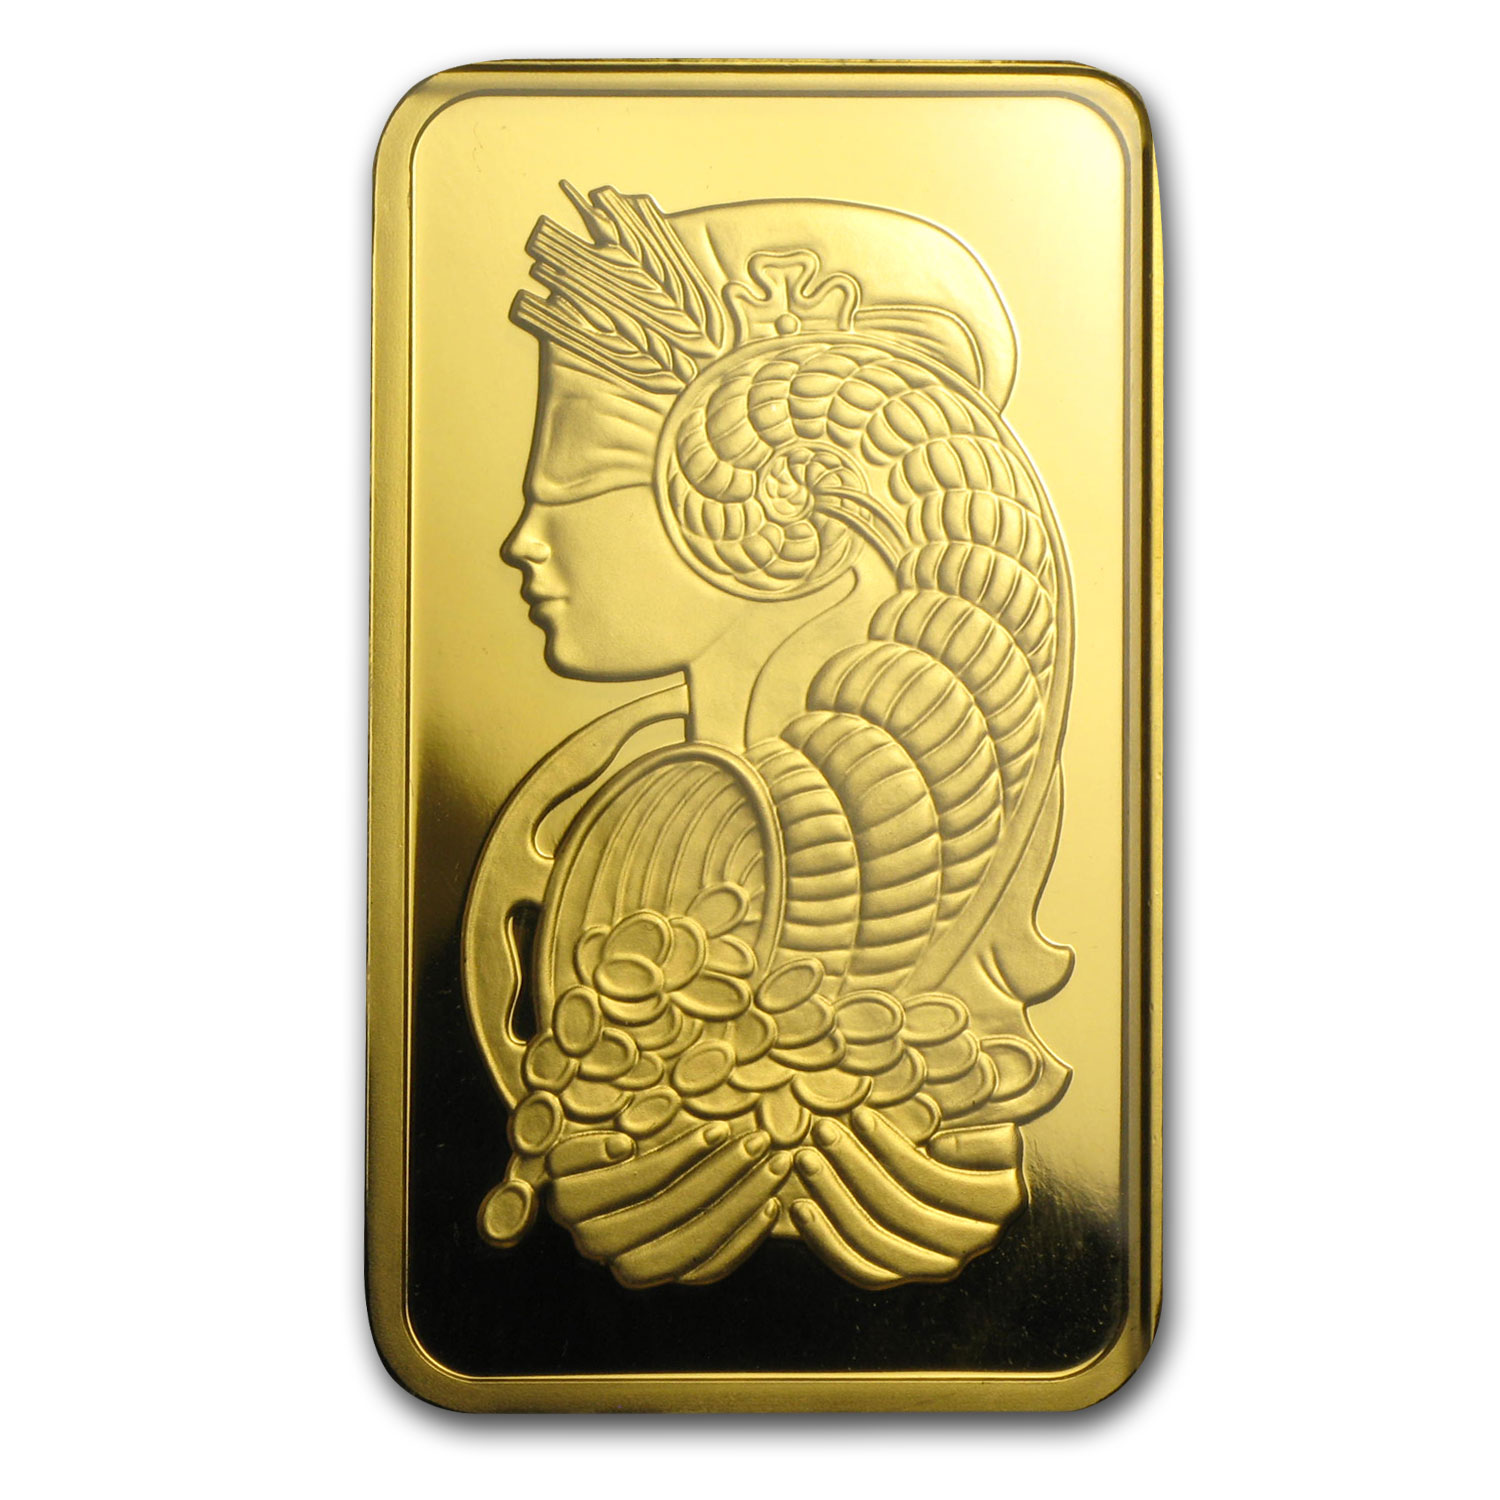 100 gram Gold Bars - Pamp Suisse (Pressed, in Assay)